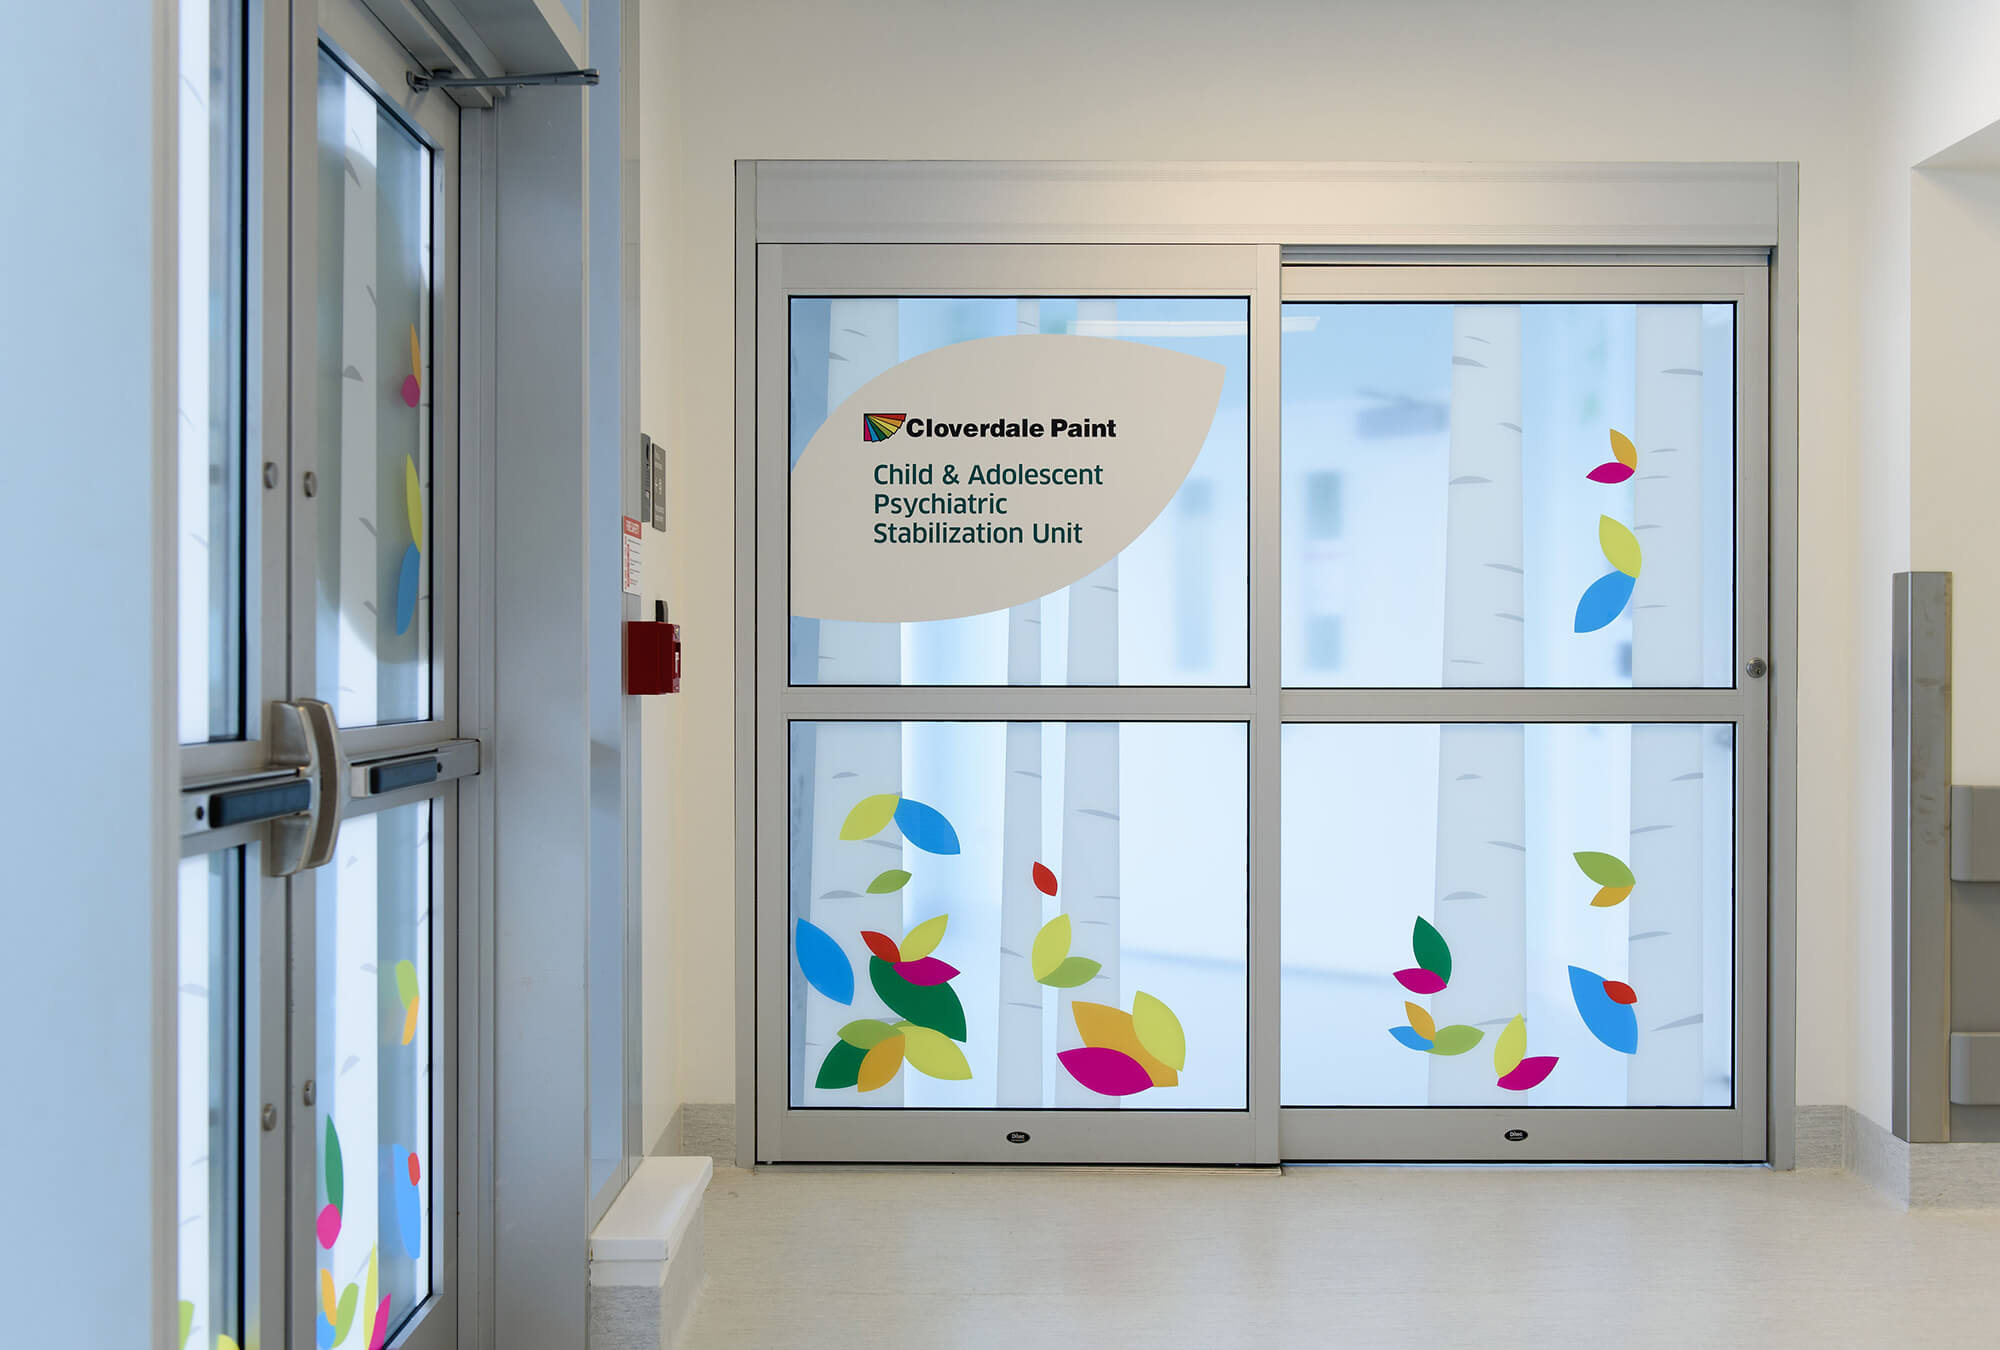 Interior window graphics on optically clear film